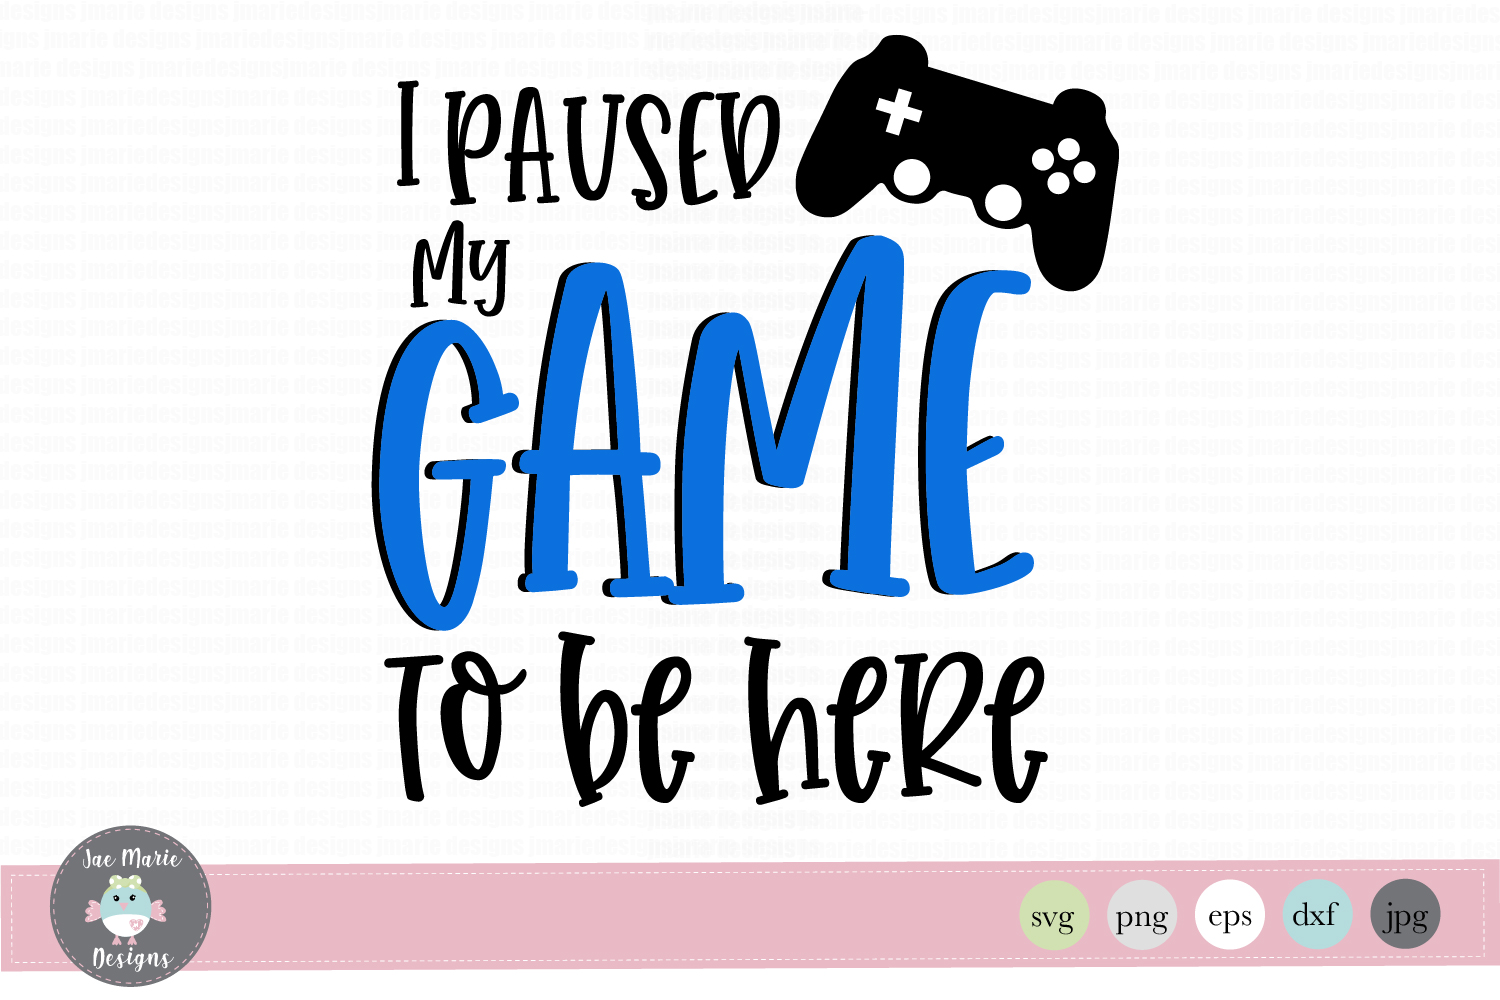 Download Free I Paused My Game To Be Here Graphic By Thejaemarie Creative for Cricut Explore, Silhouette and other cutting machines.